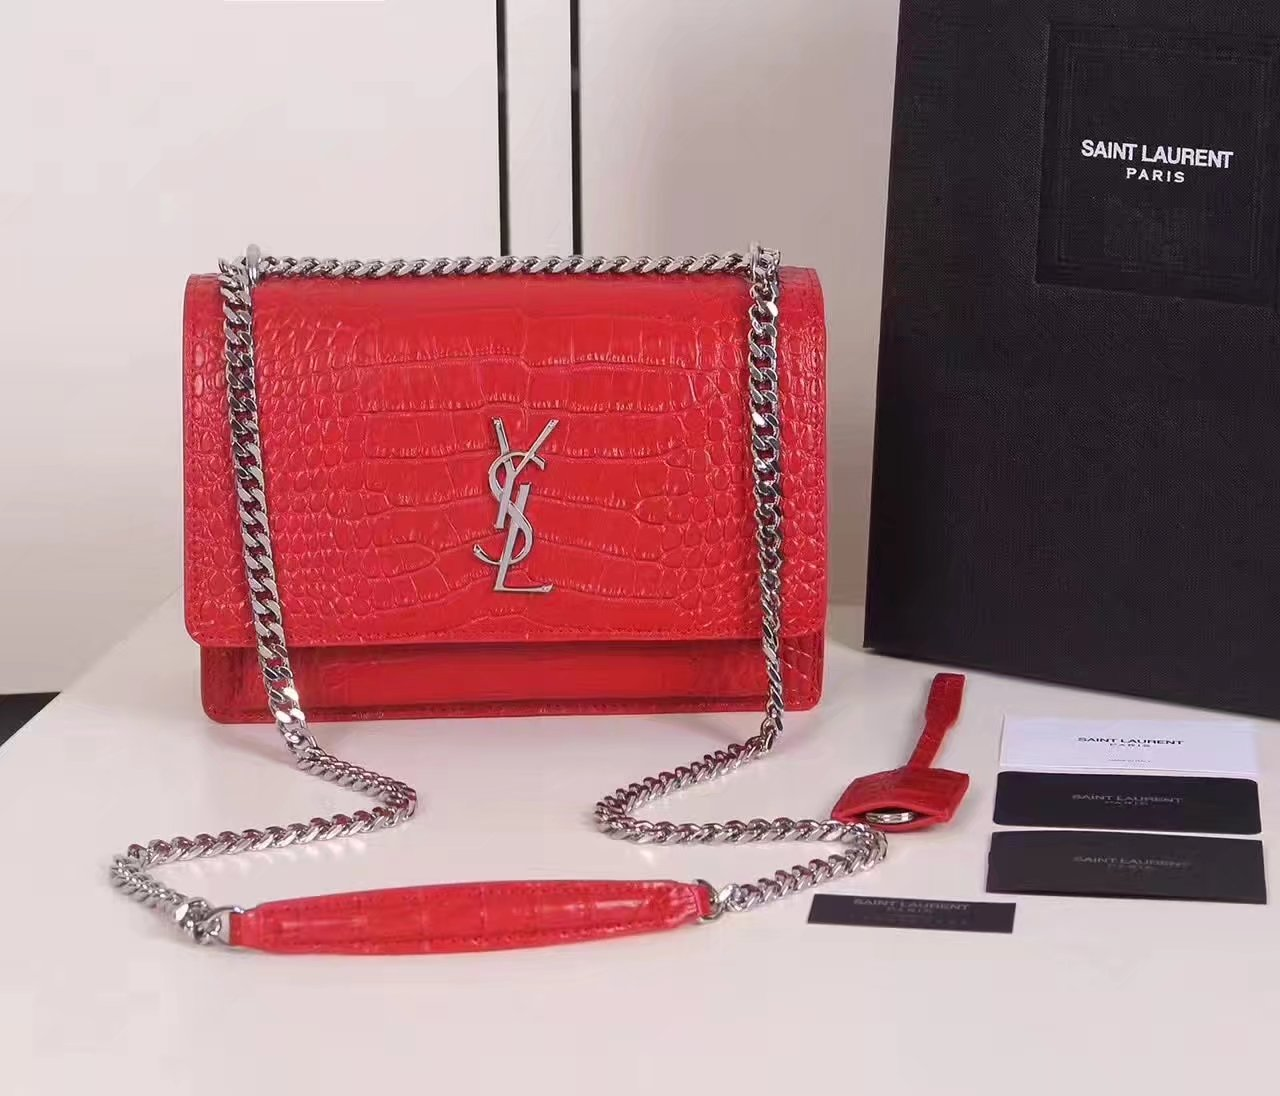 Yves Saint Laurent Medium Sunset Bag In Crocodile Embossed Shiny Leather Red